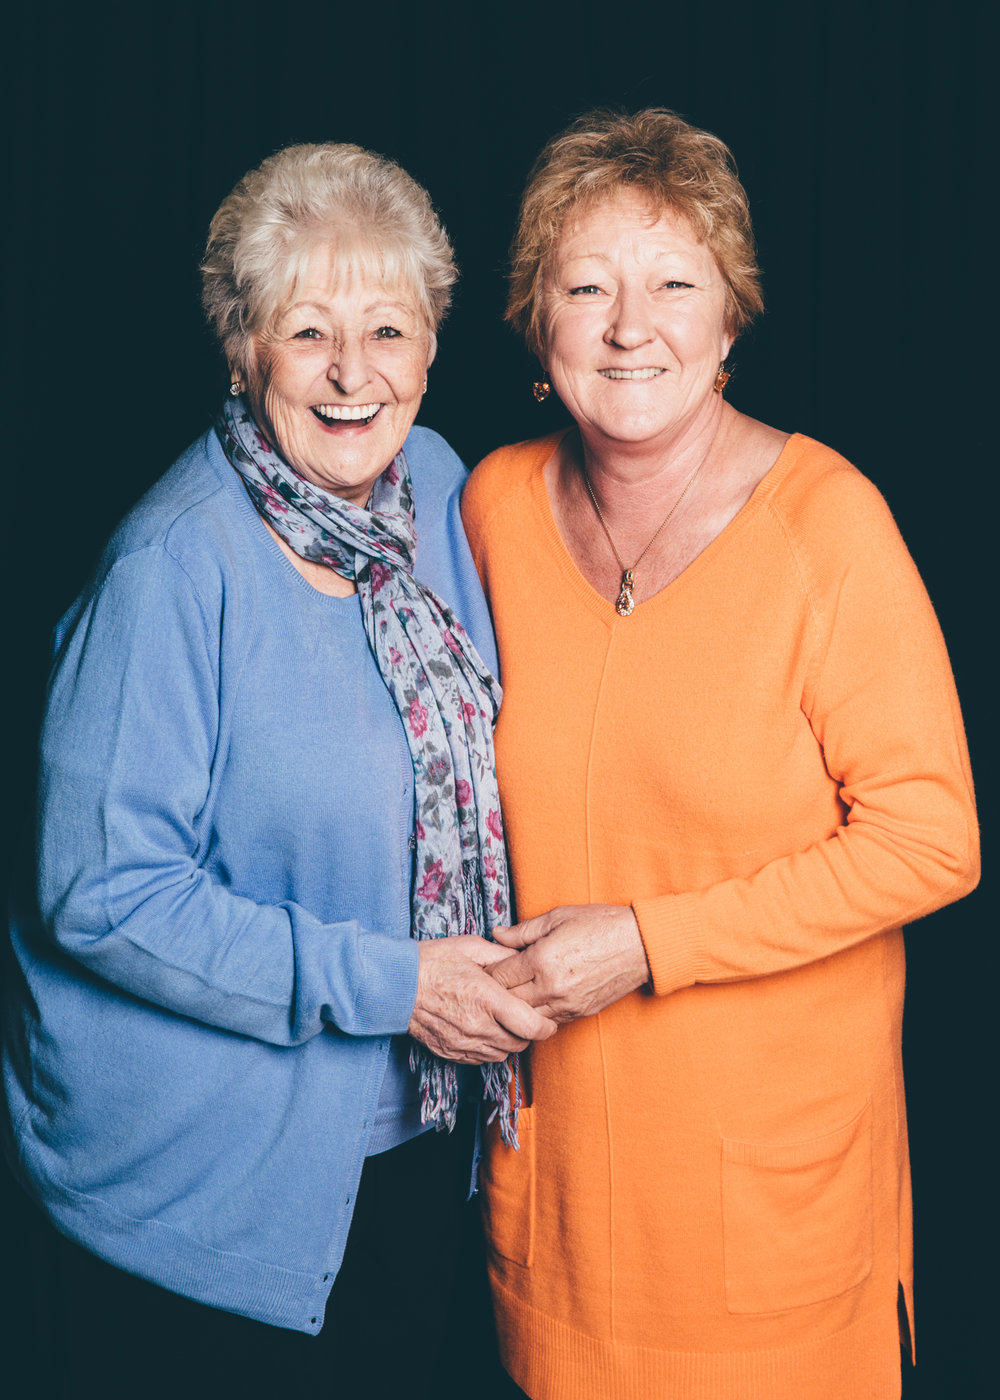 Bev and Kerry Fussell.jpg